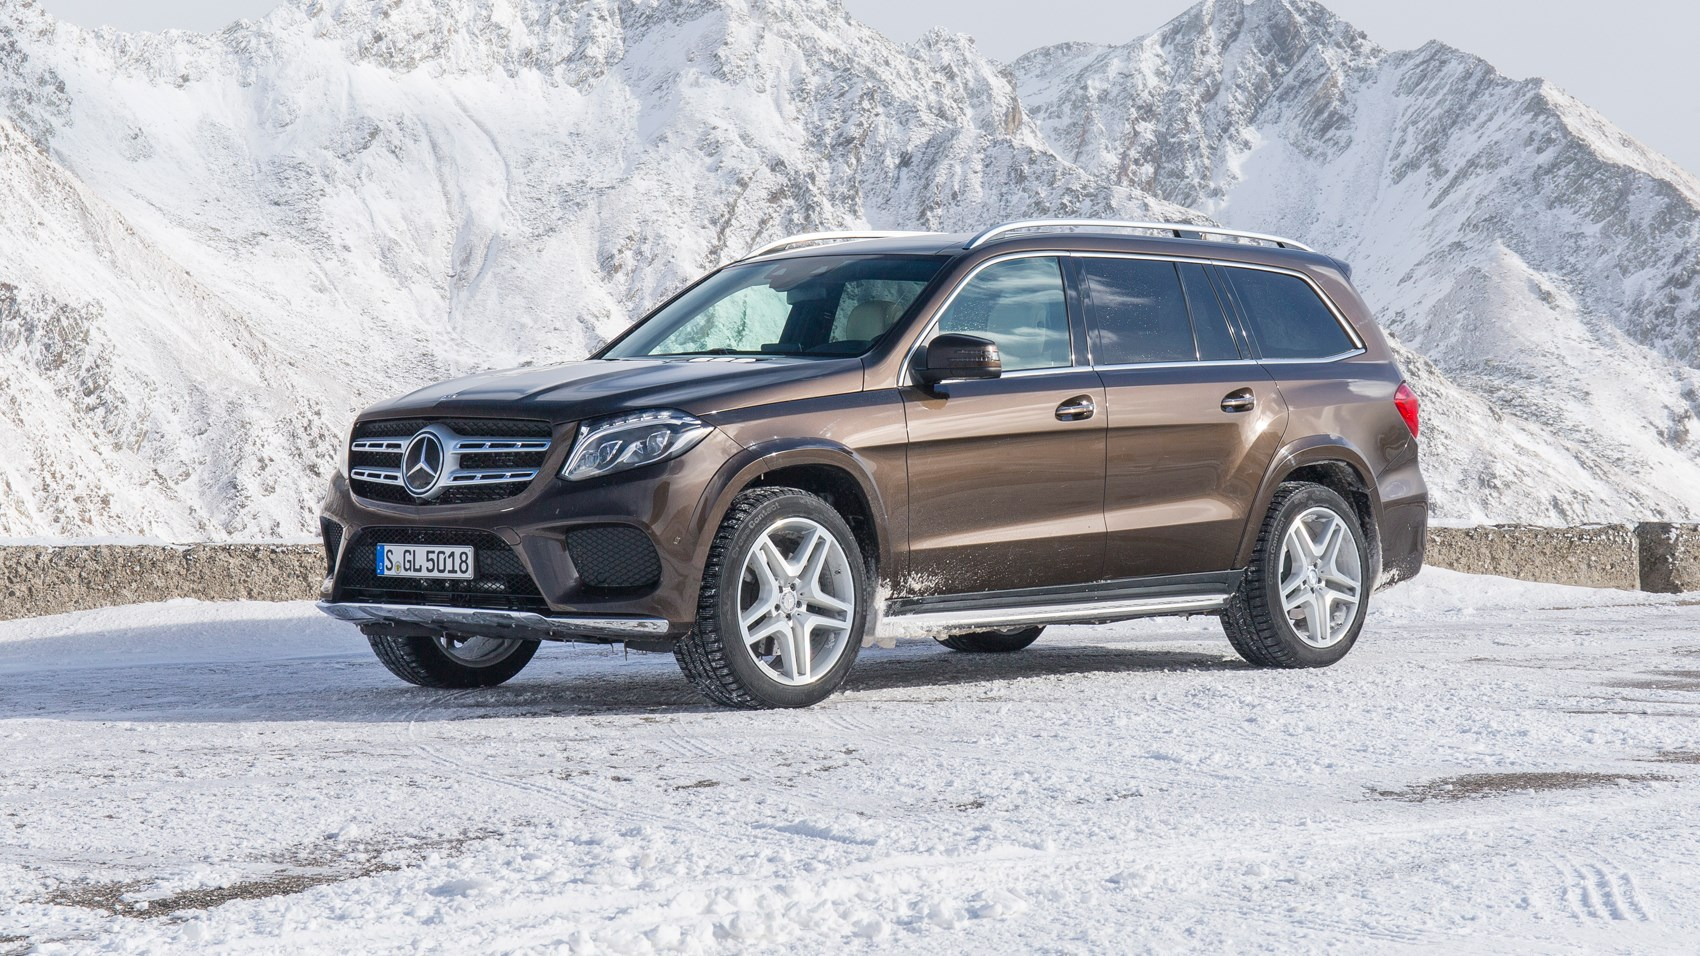 Mercedes GLS 350 CDI power service luxury car hire